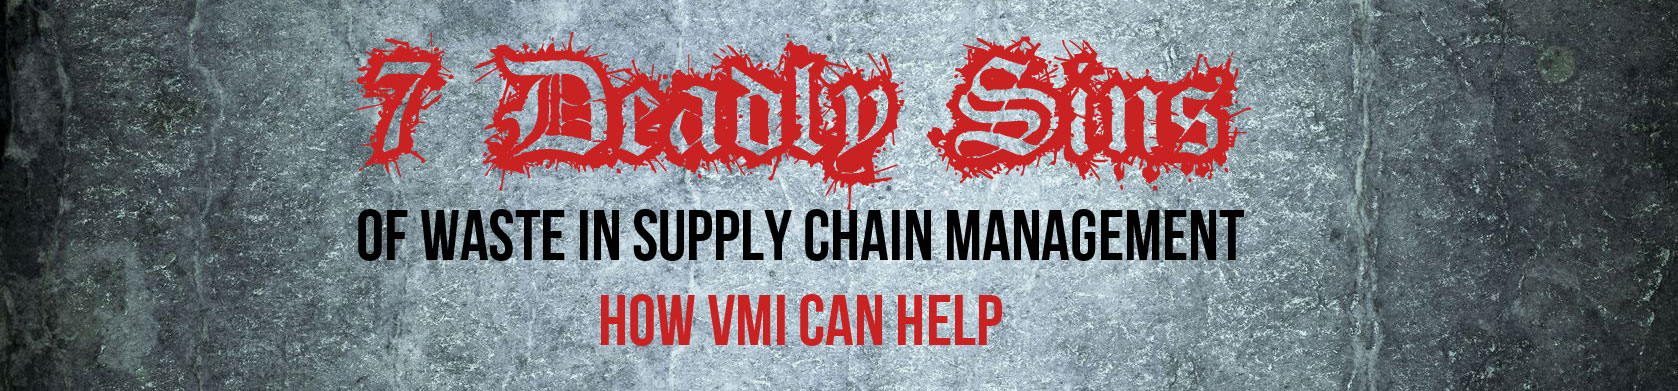 eBook: 7 Deadly Sins of Waste in Supply Chain Management